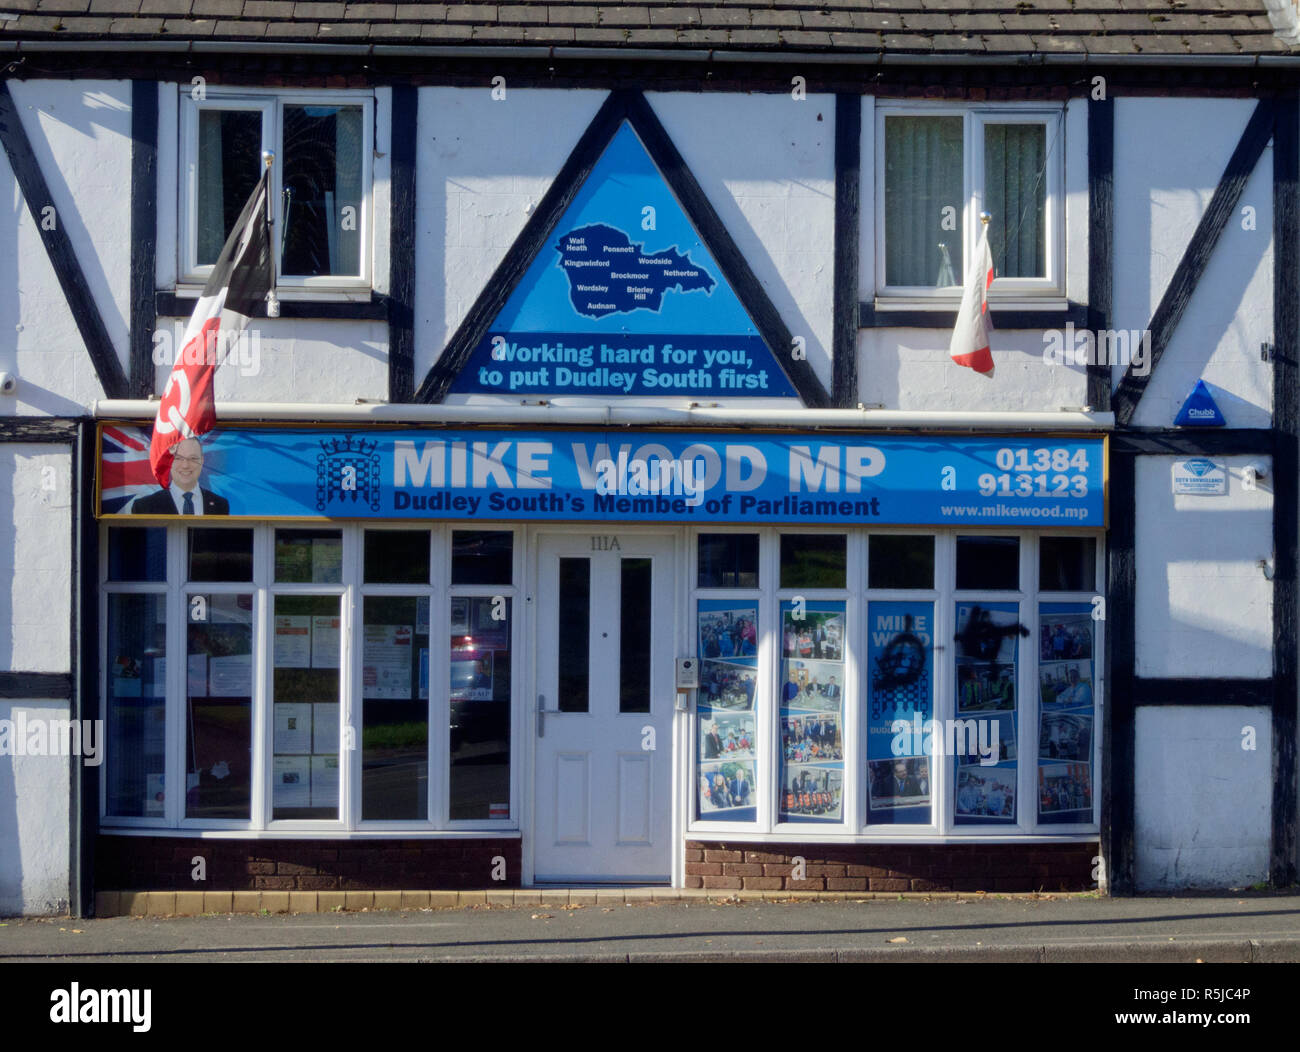 Mike Wood MP ( Conservative ) Constituency Office for Dudley South Constituency, Wordsley, West Midlands, England, UK - Stock Image